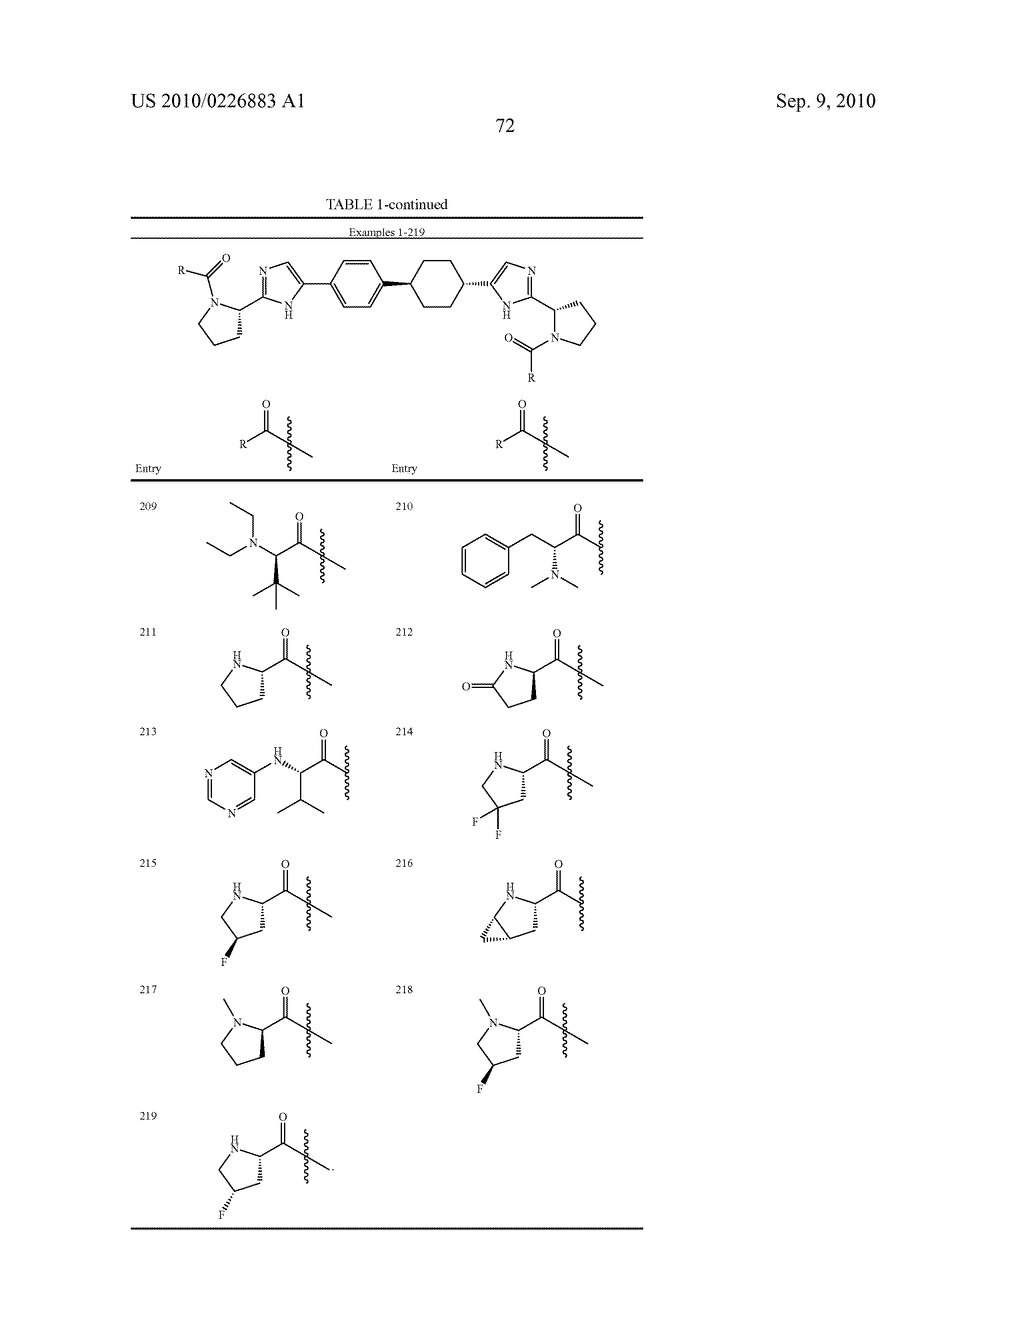 LINKED DIIMIDAZOLE DERIVATIVES - diagram, schematic, and image 73